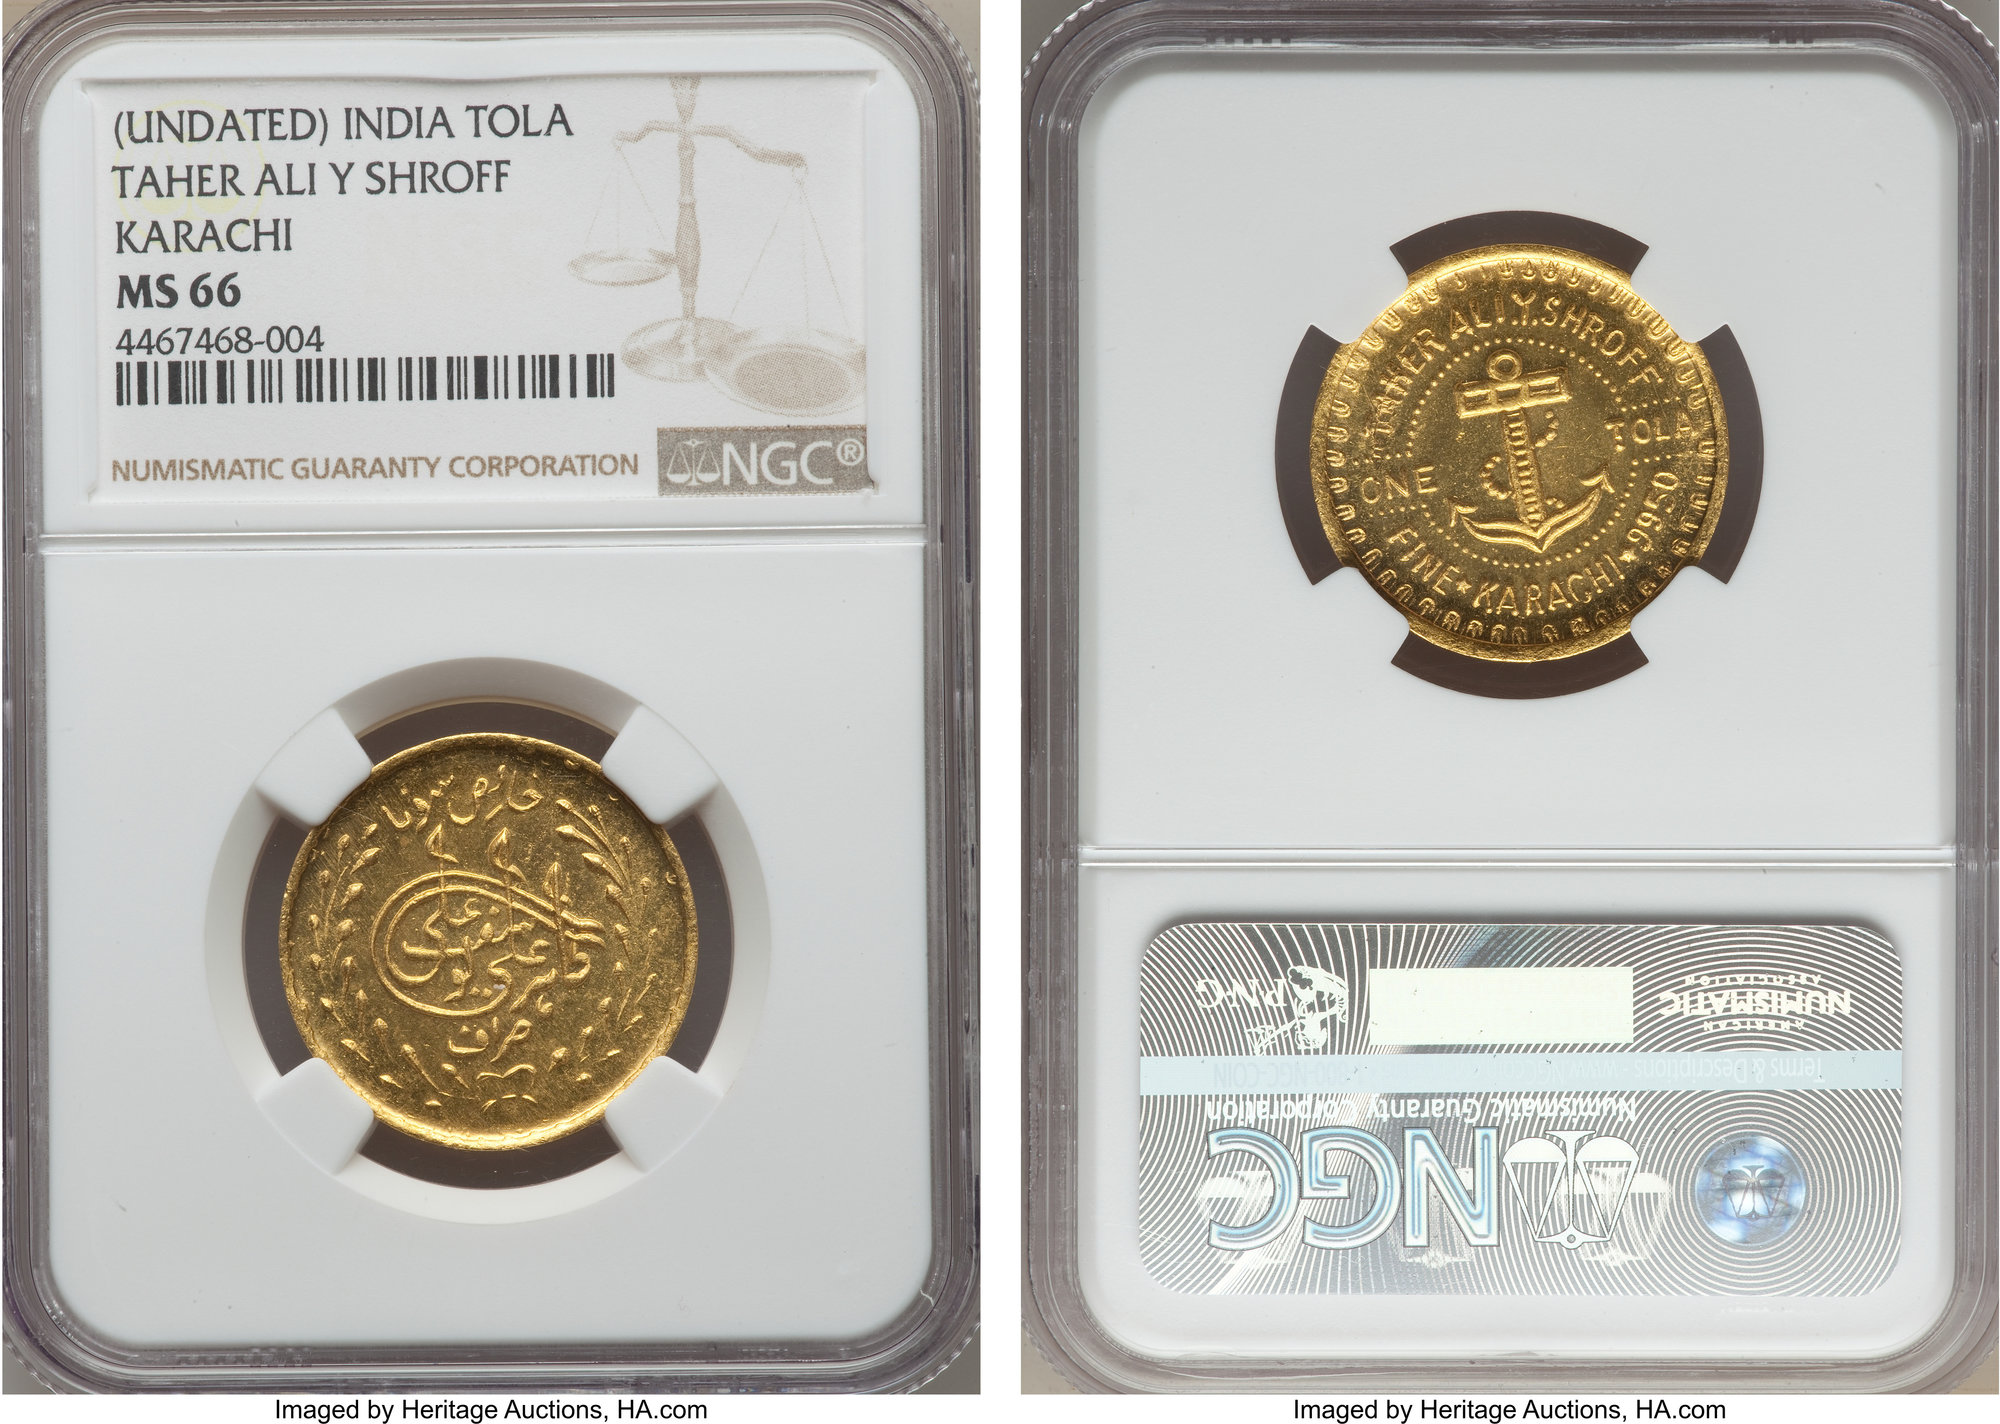 Numisbids Heritage World Coin Auctions Cce Signature Sale 3064 Online Sess Lot 33570 Pakistan Taher Ali Y Shroff Gold Tola Nd 1940 S Ms66